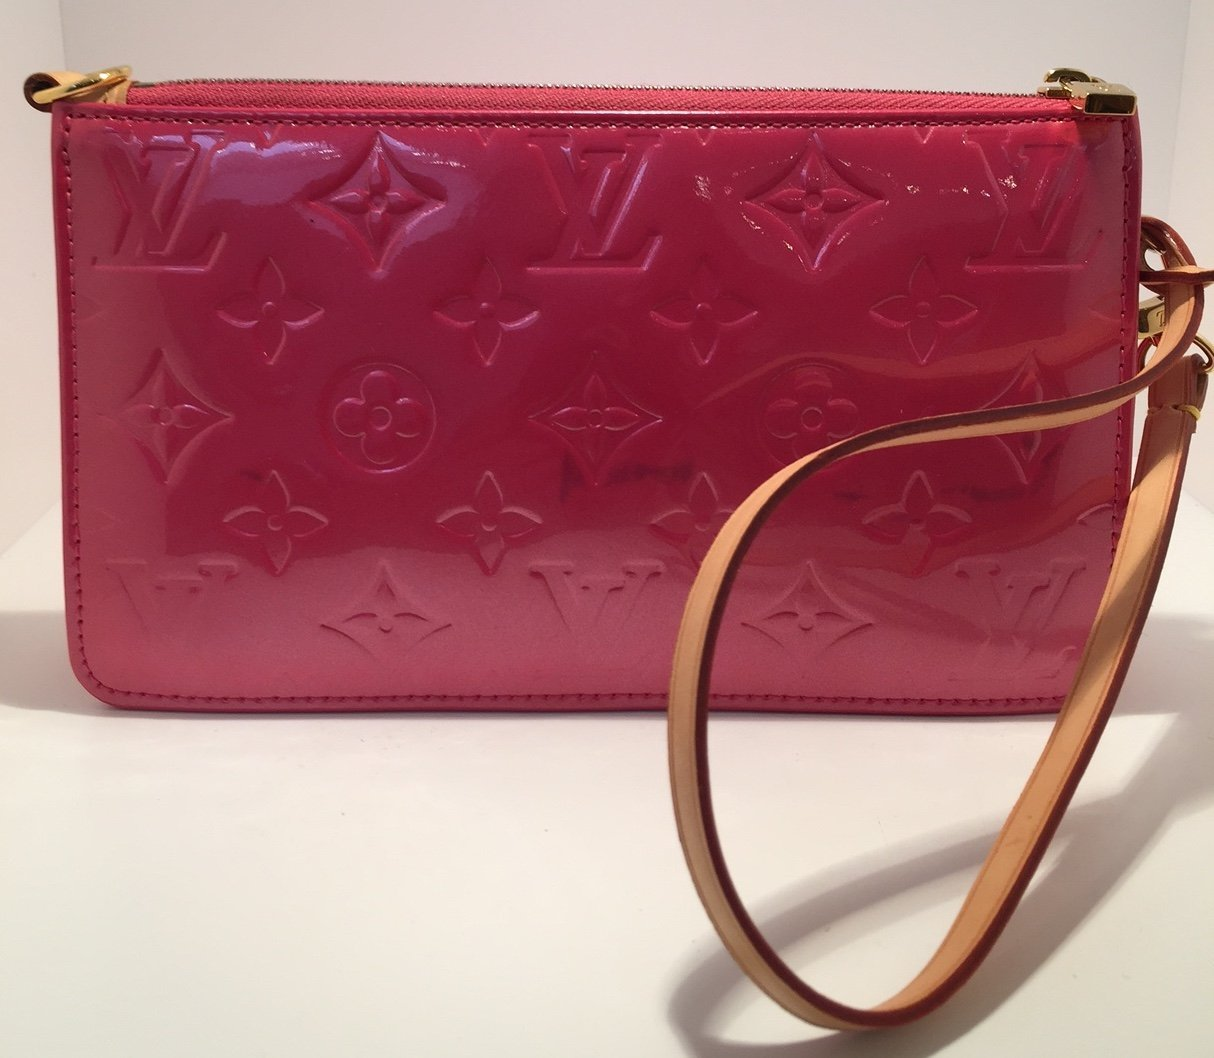 Vintage Louis Vuitton Handbag, SALE, SOLD